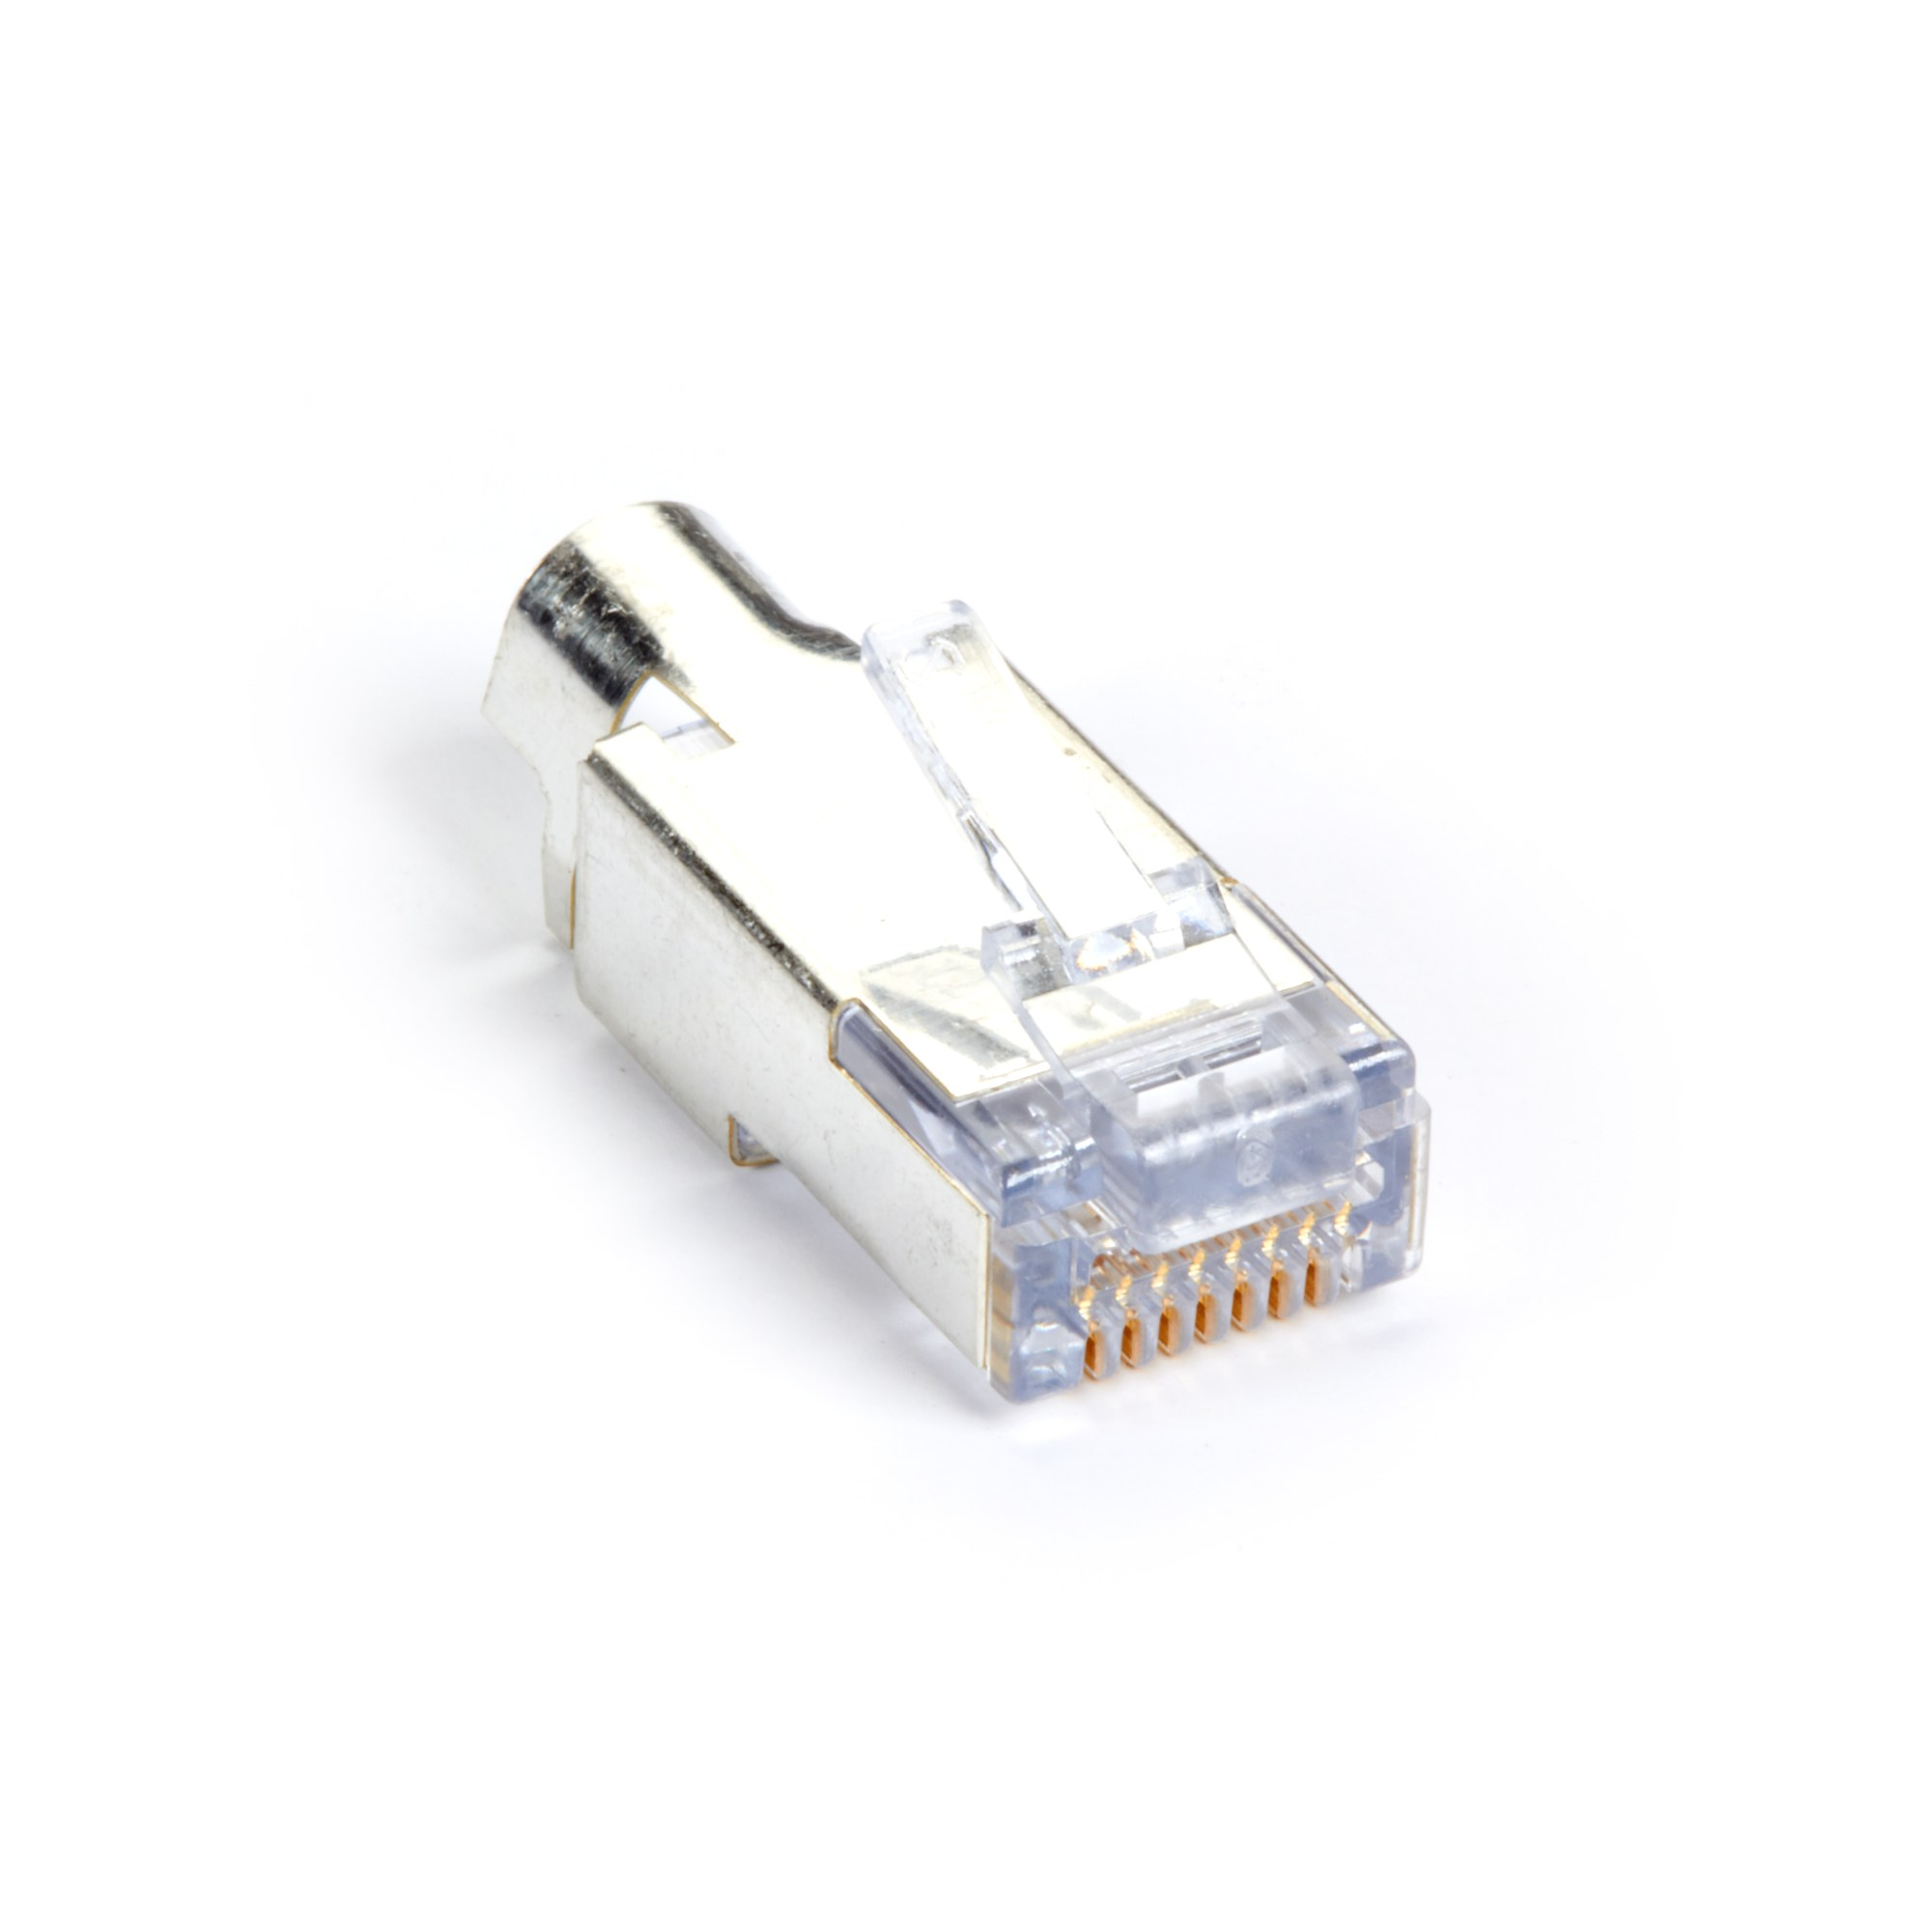 hight resolution of cat6 ez rj45 modular plug connector for round solid stranded wire shielded taa 100 pack